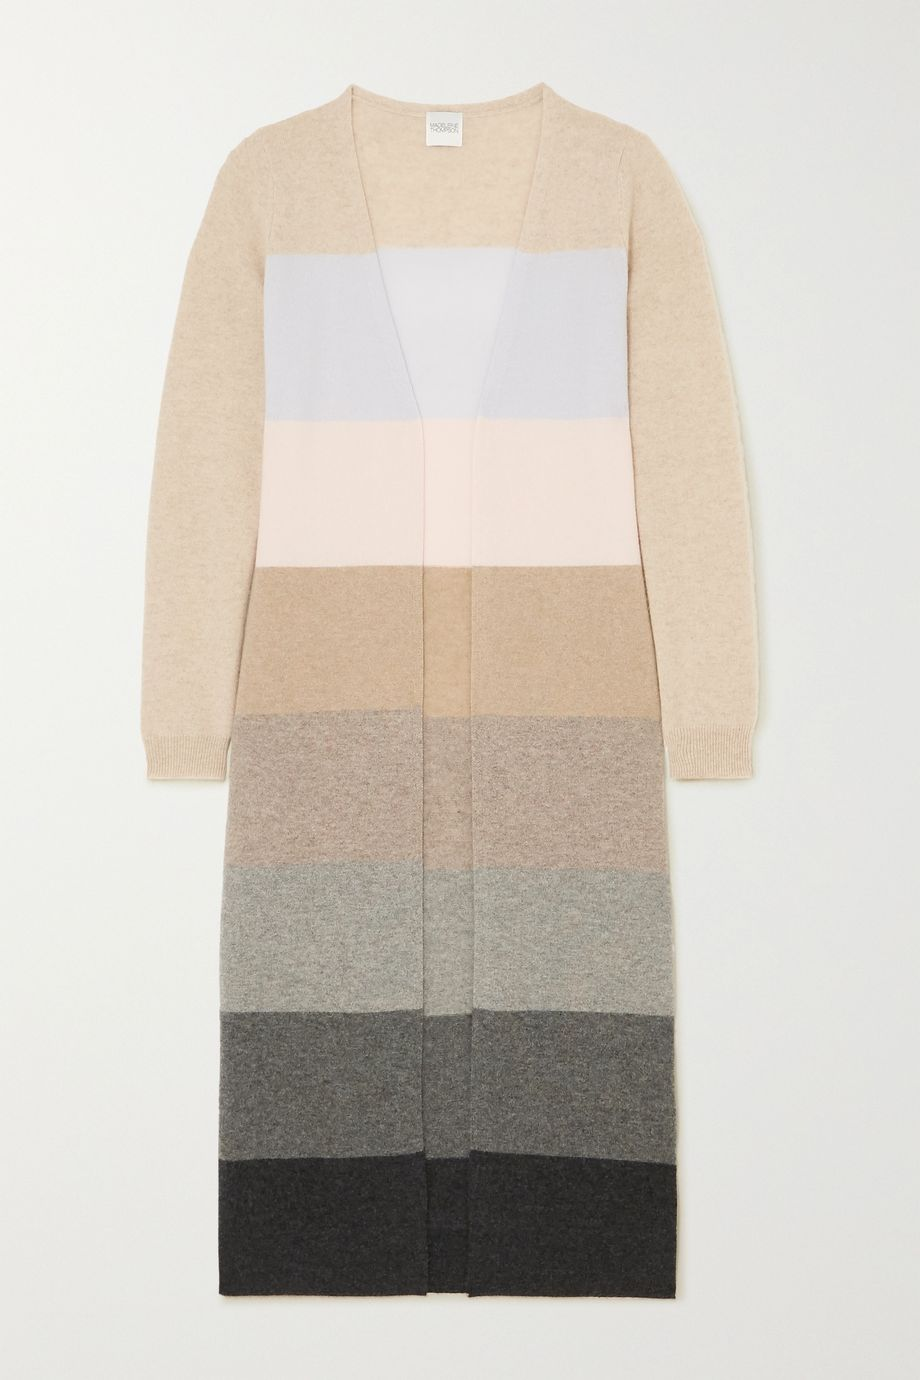 Madeleine Thompson Pricus striped cashmere cardigan